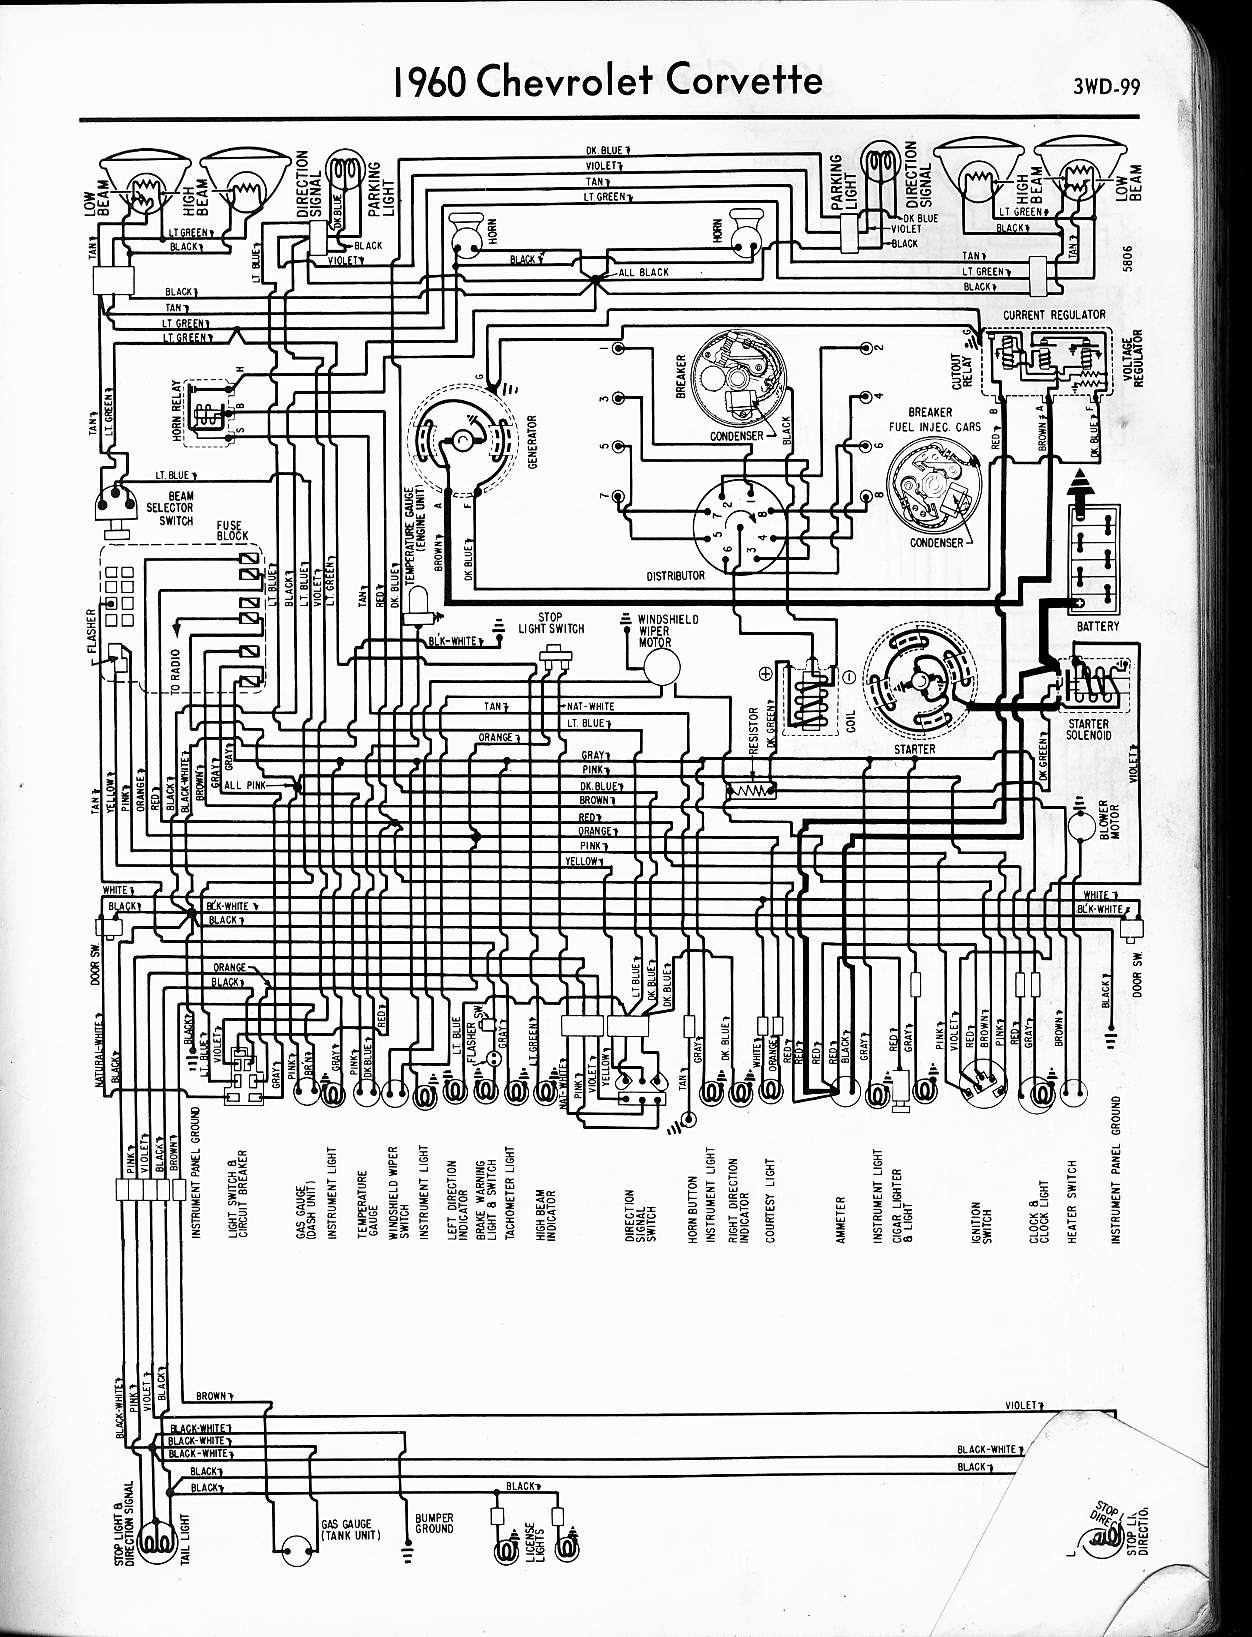 1960 corvette 57 - 65 chevy wiring diagrams